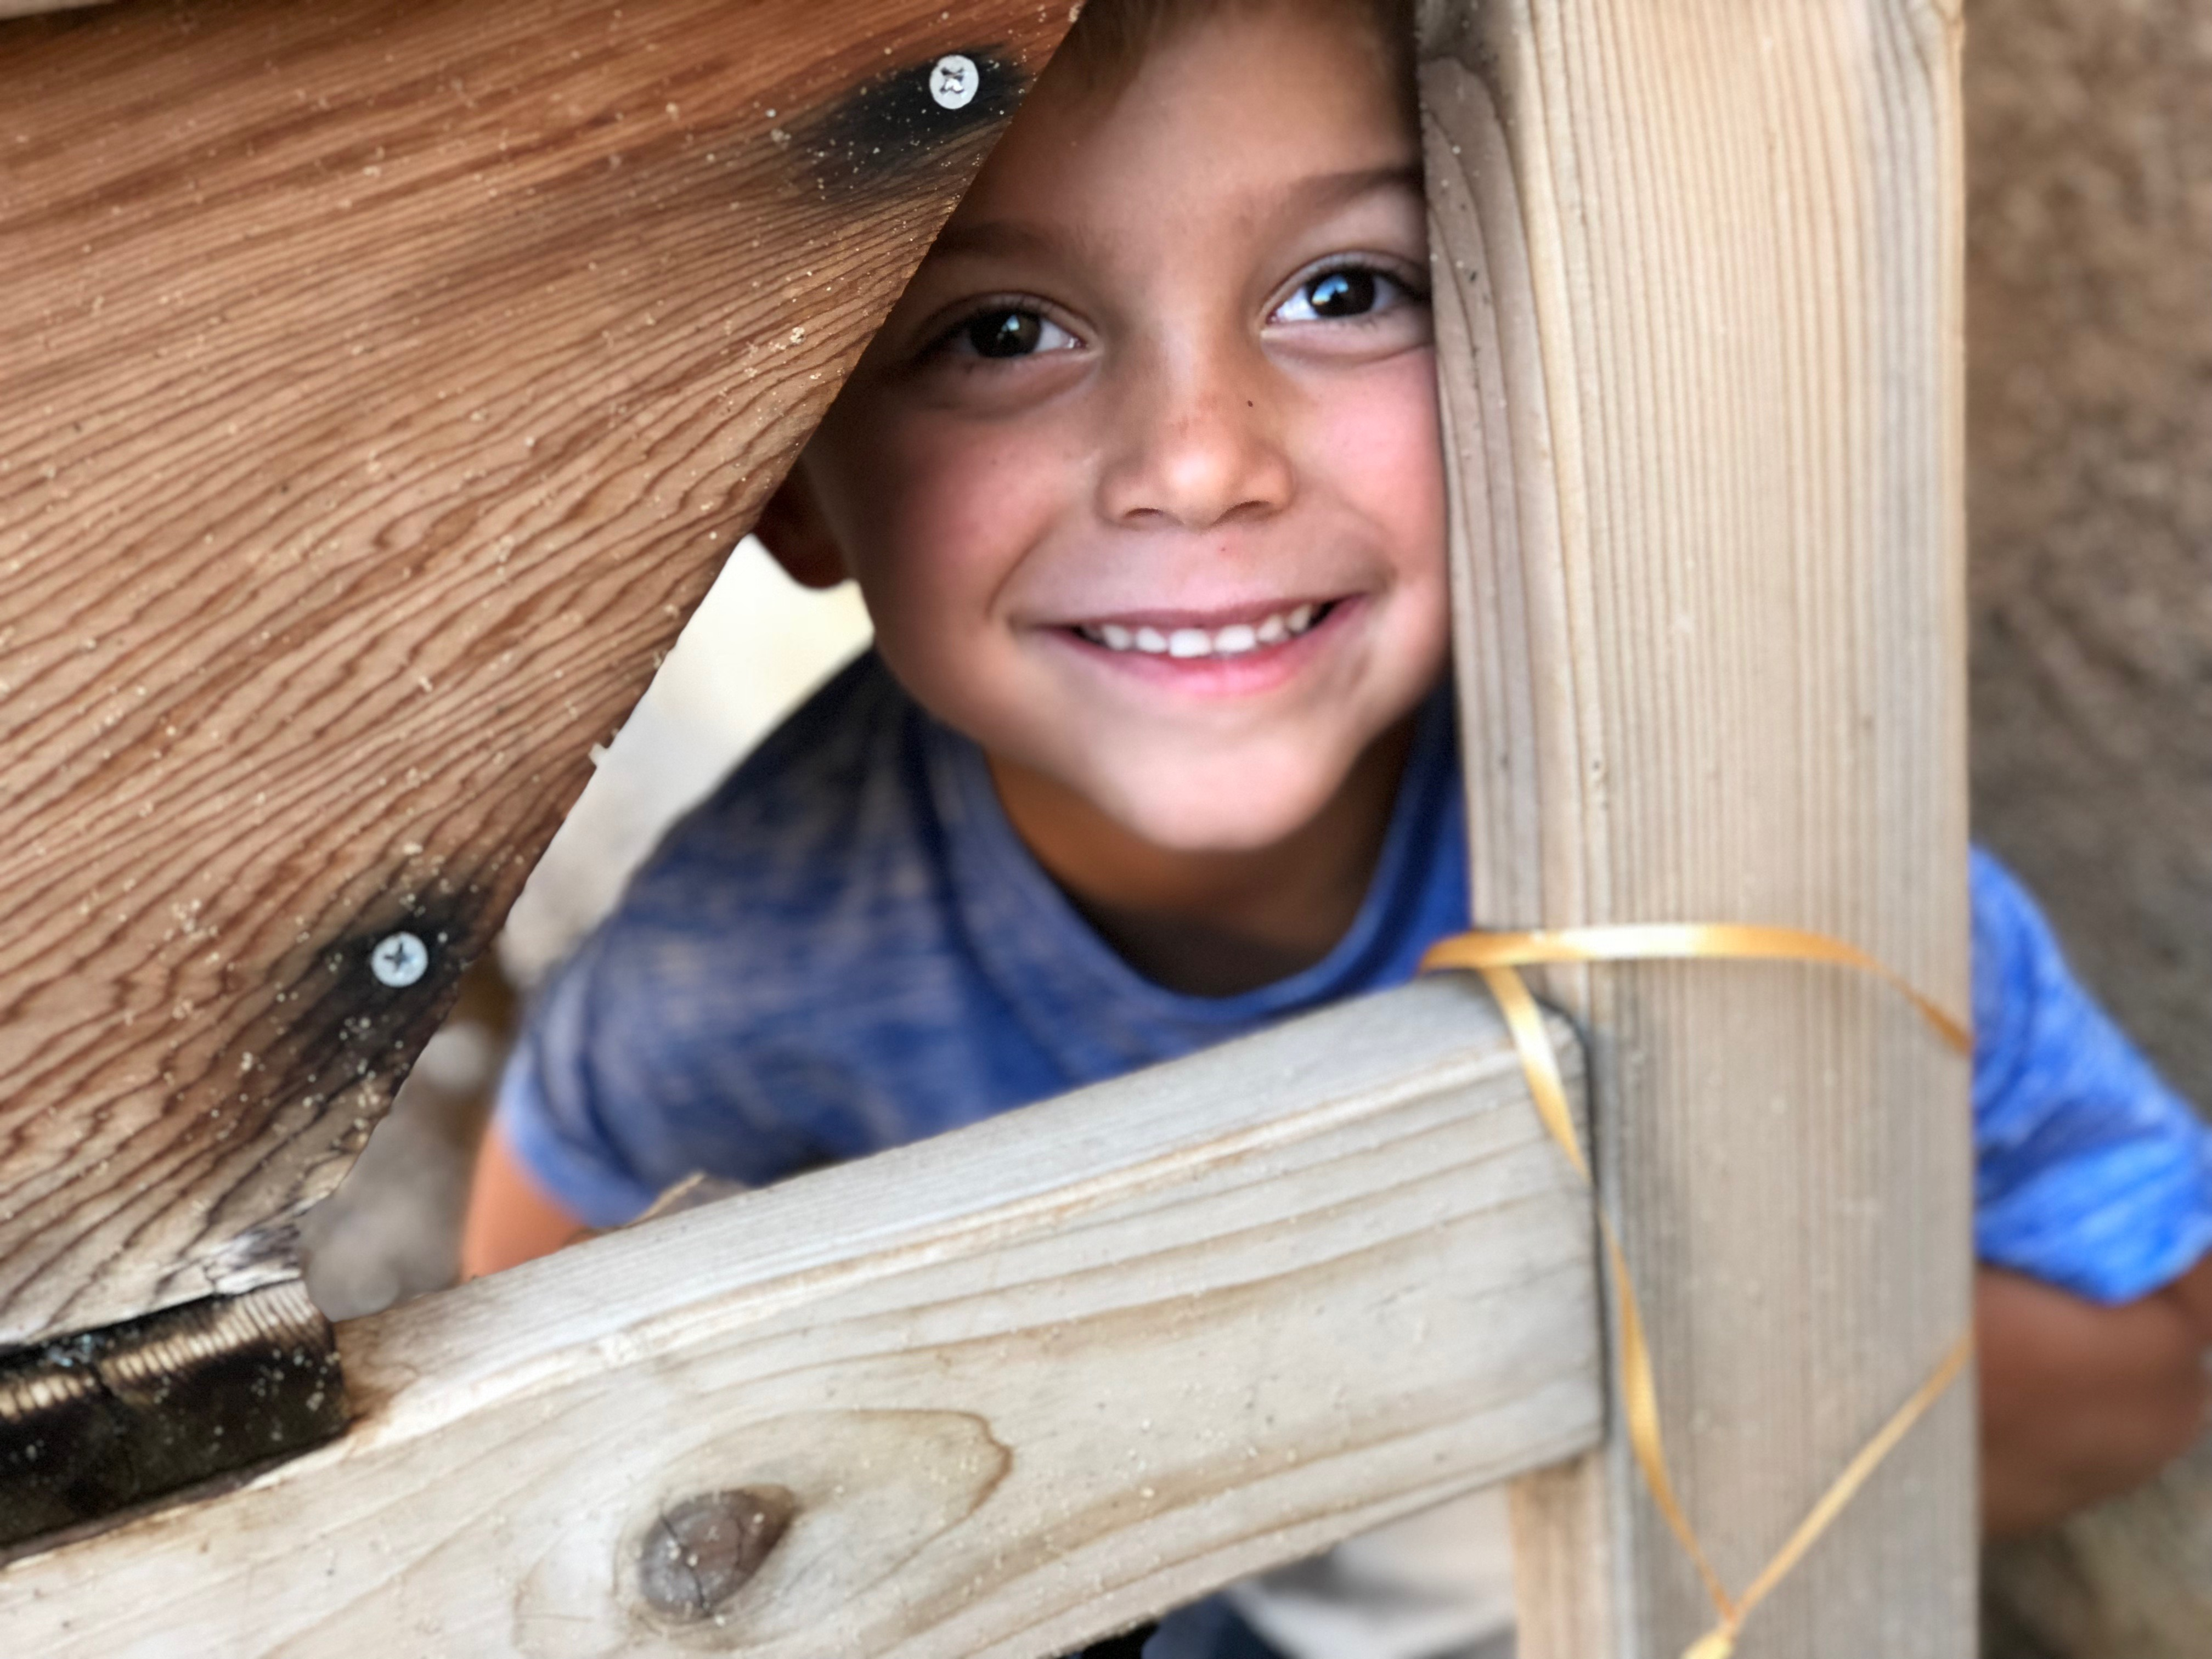 Kid hiding and smiling